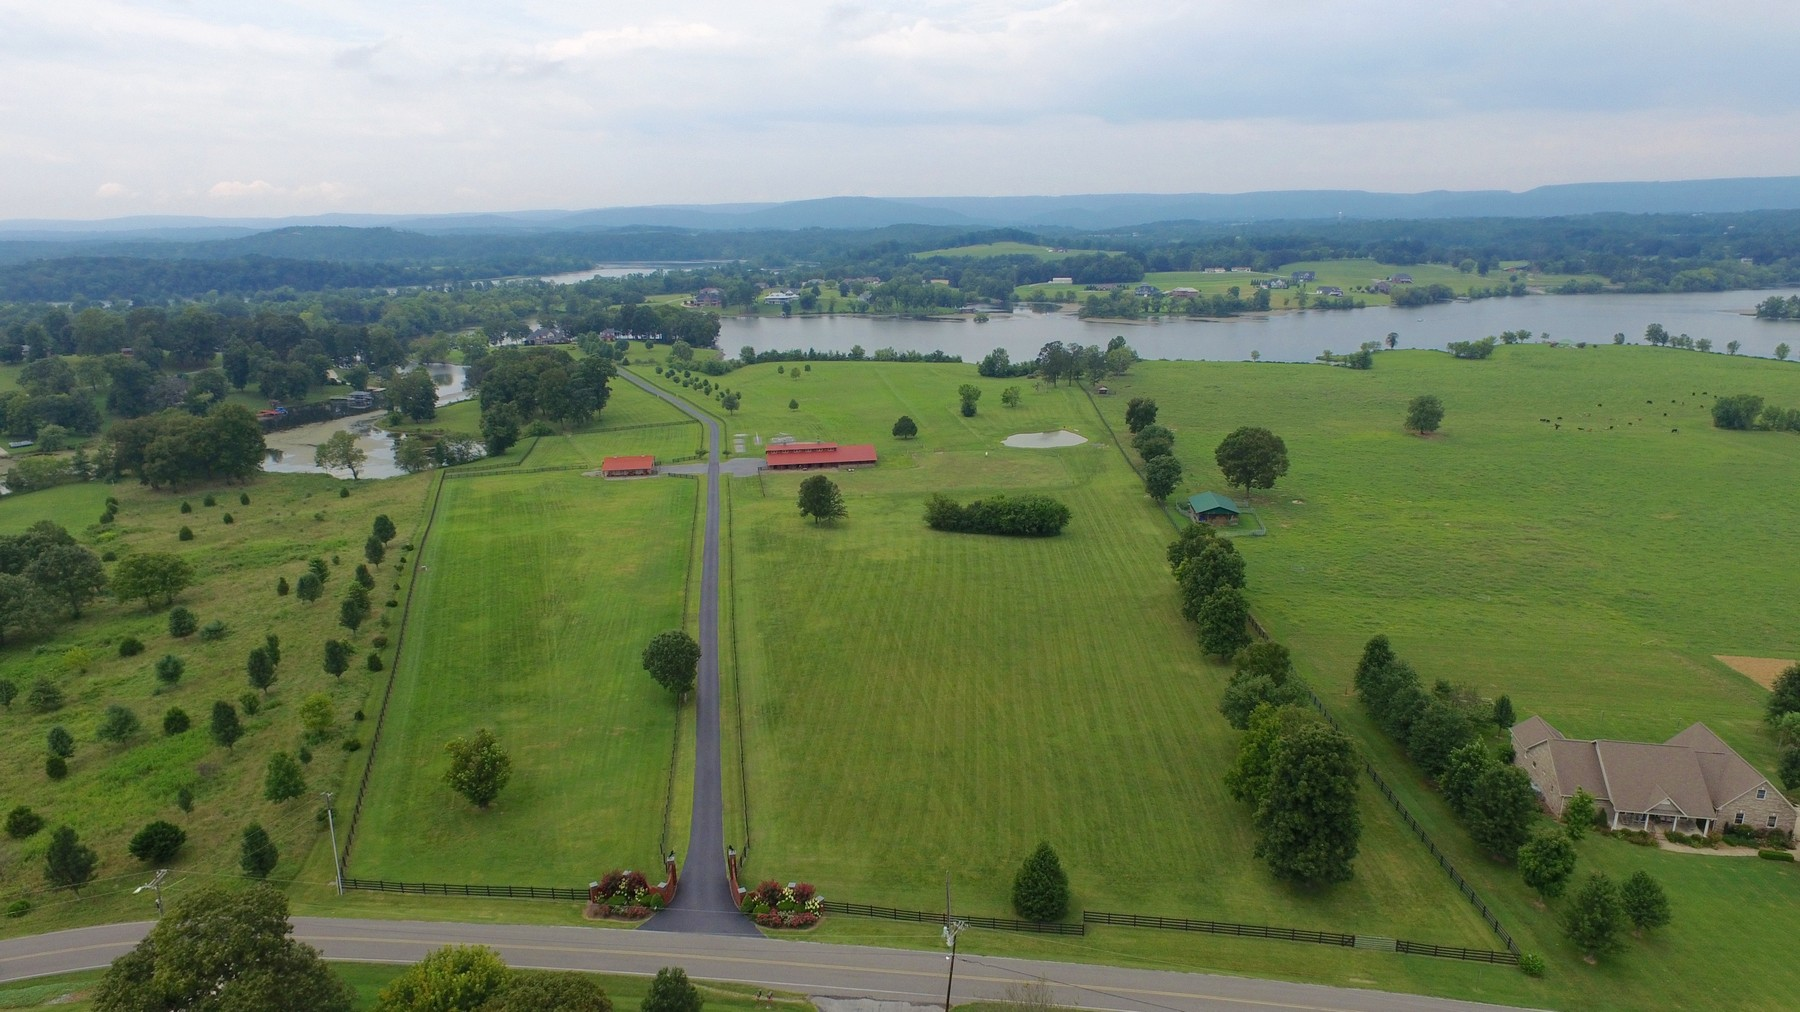 Property For Sale at Exquisite Equestrian Farm on the banks of Lake Chickamauga